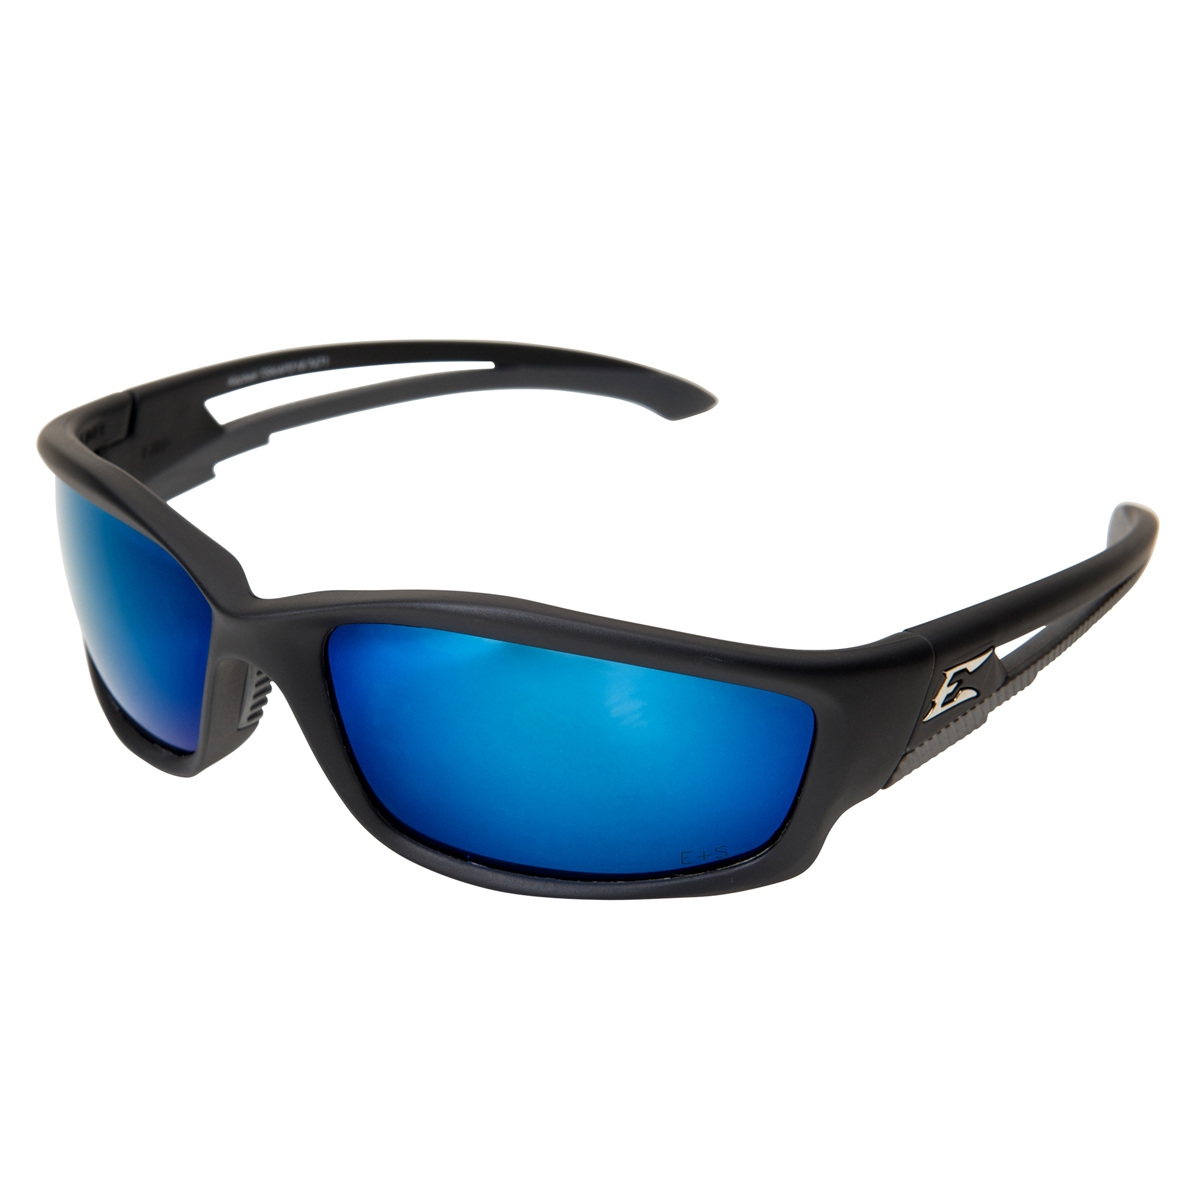 5710c0bfb9a Polarized Sunglasses Blue Reflection « Heritage Malta